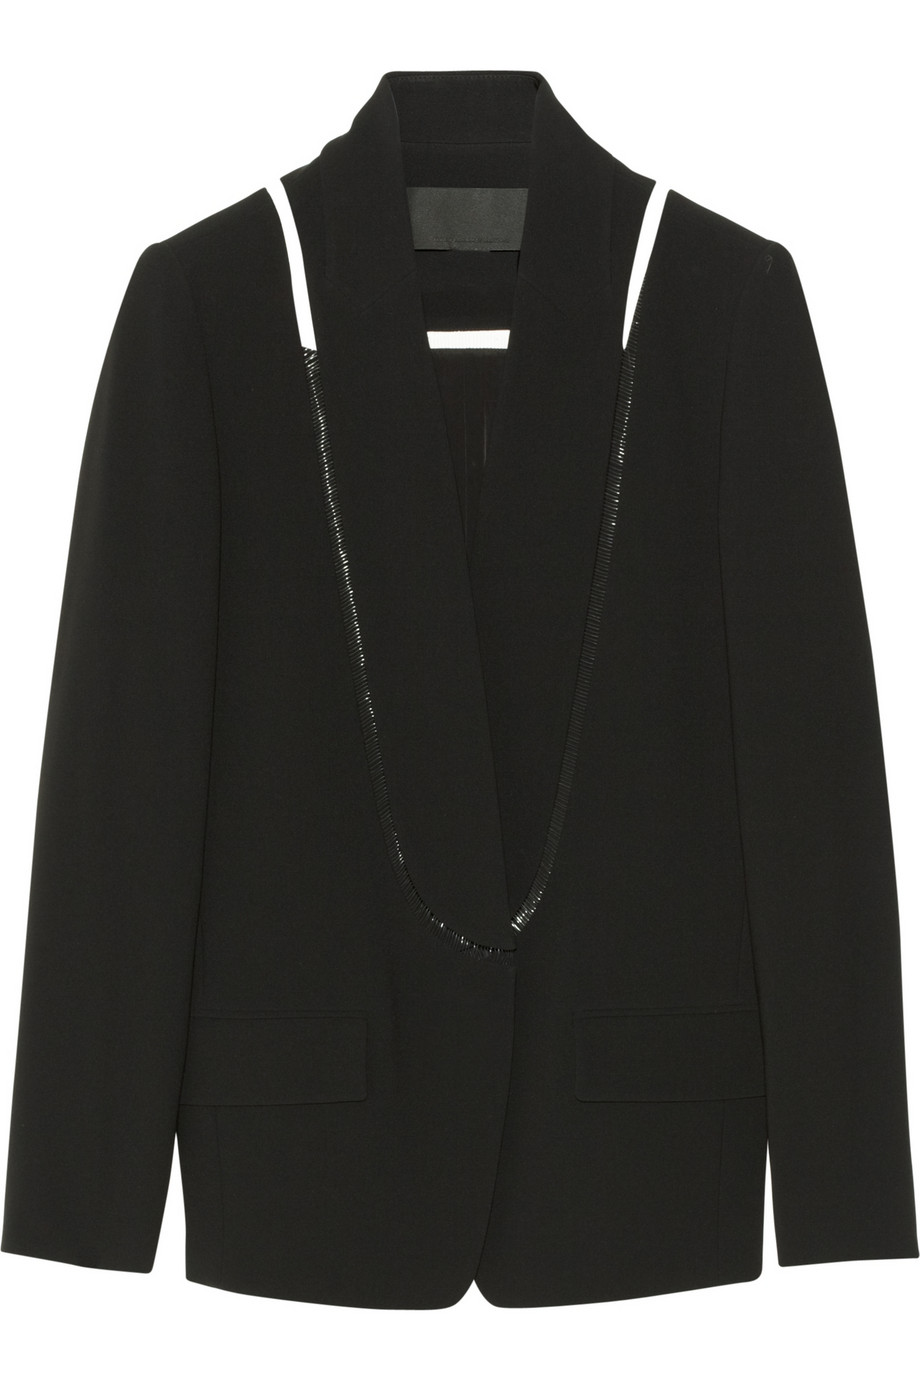 Alexander Wang Crepe-jersey and fishline blazer – 60% at THE OUTNET.COM